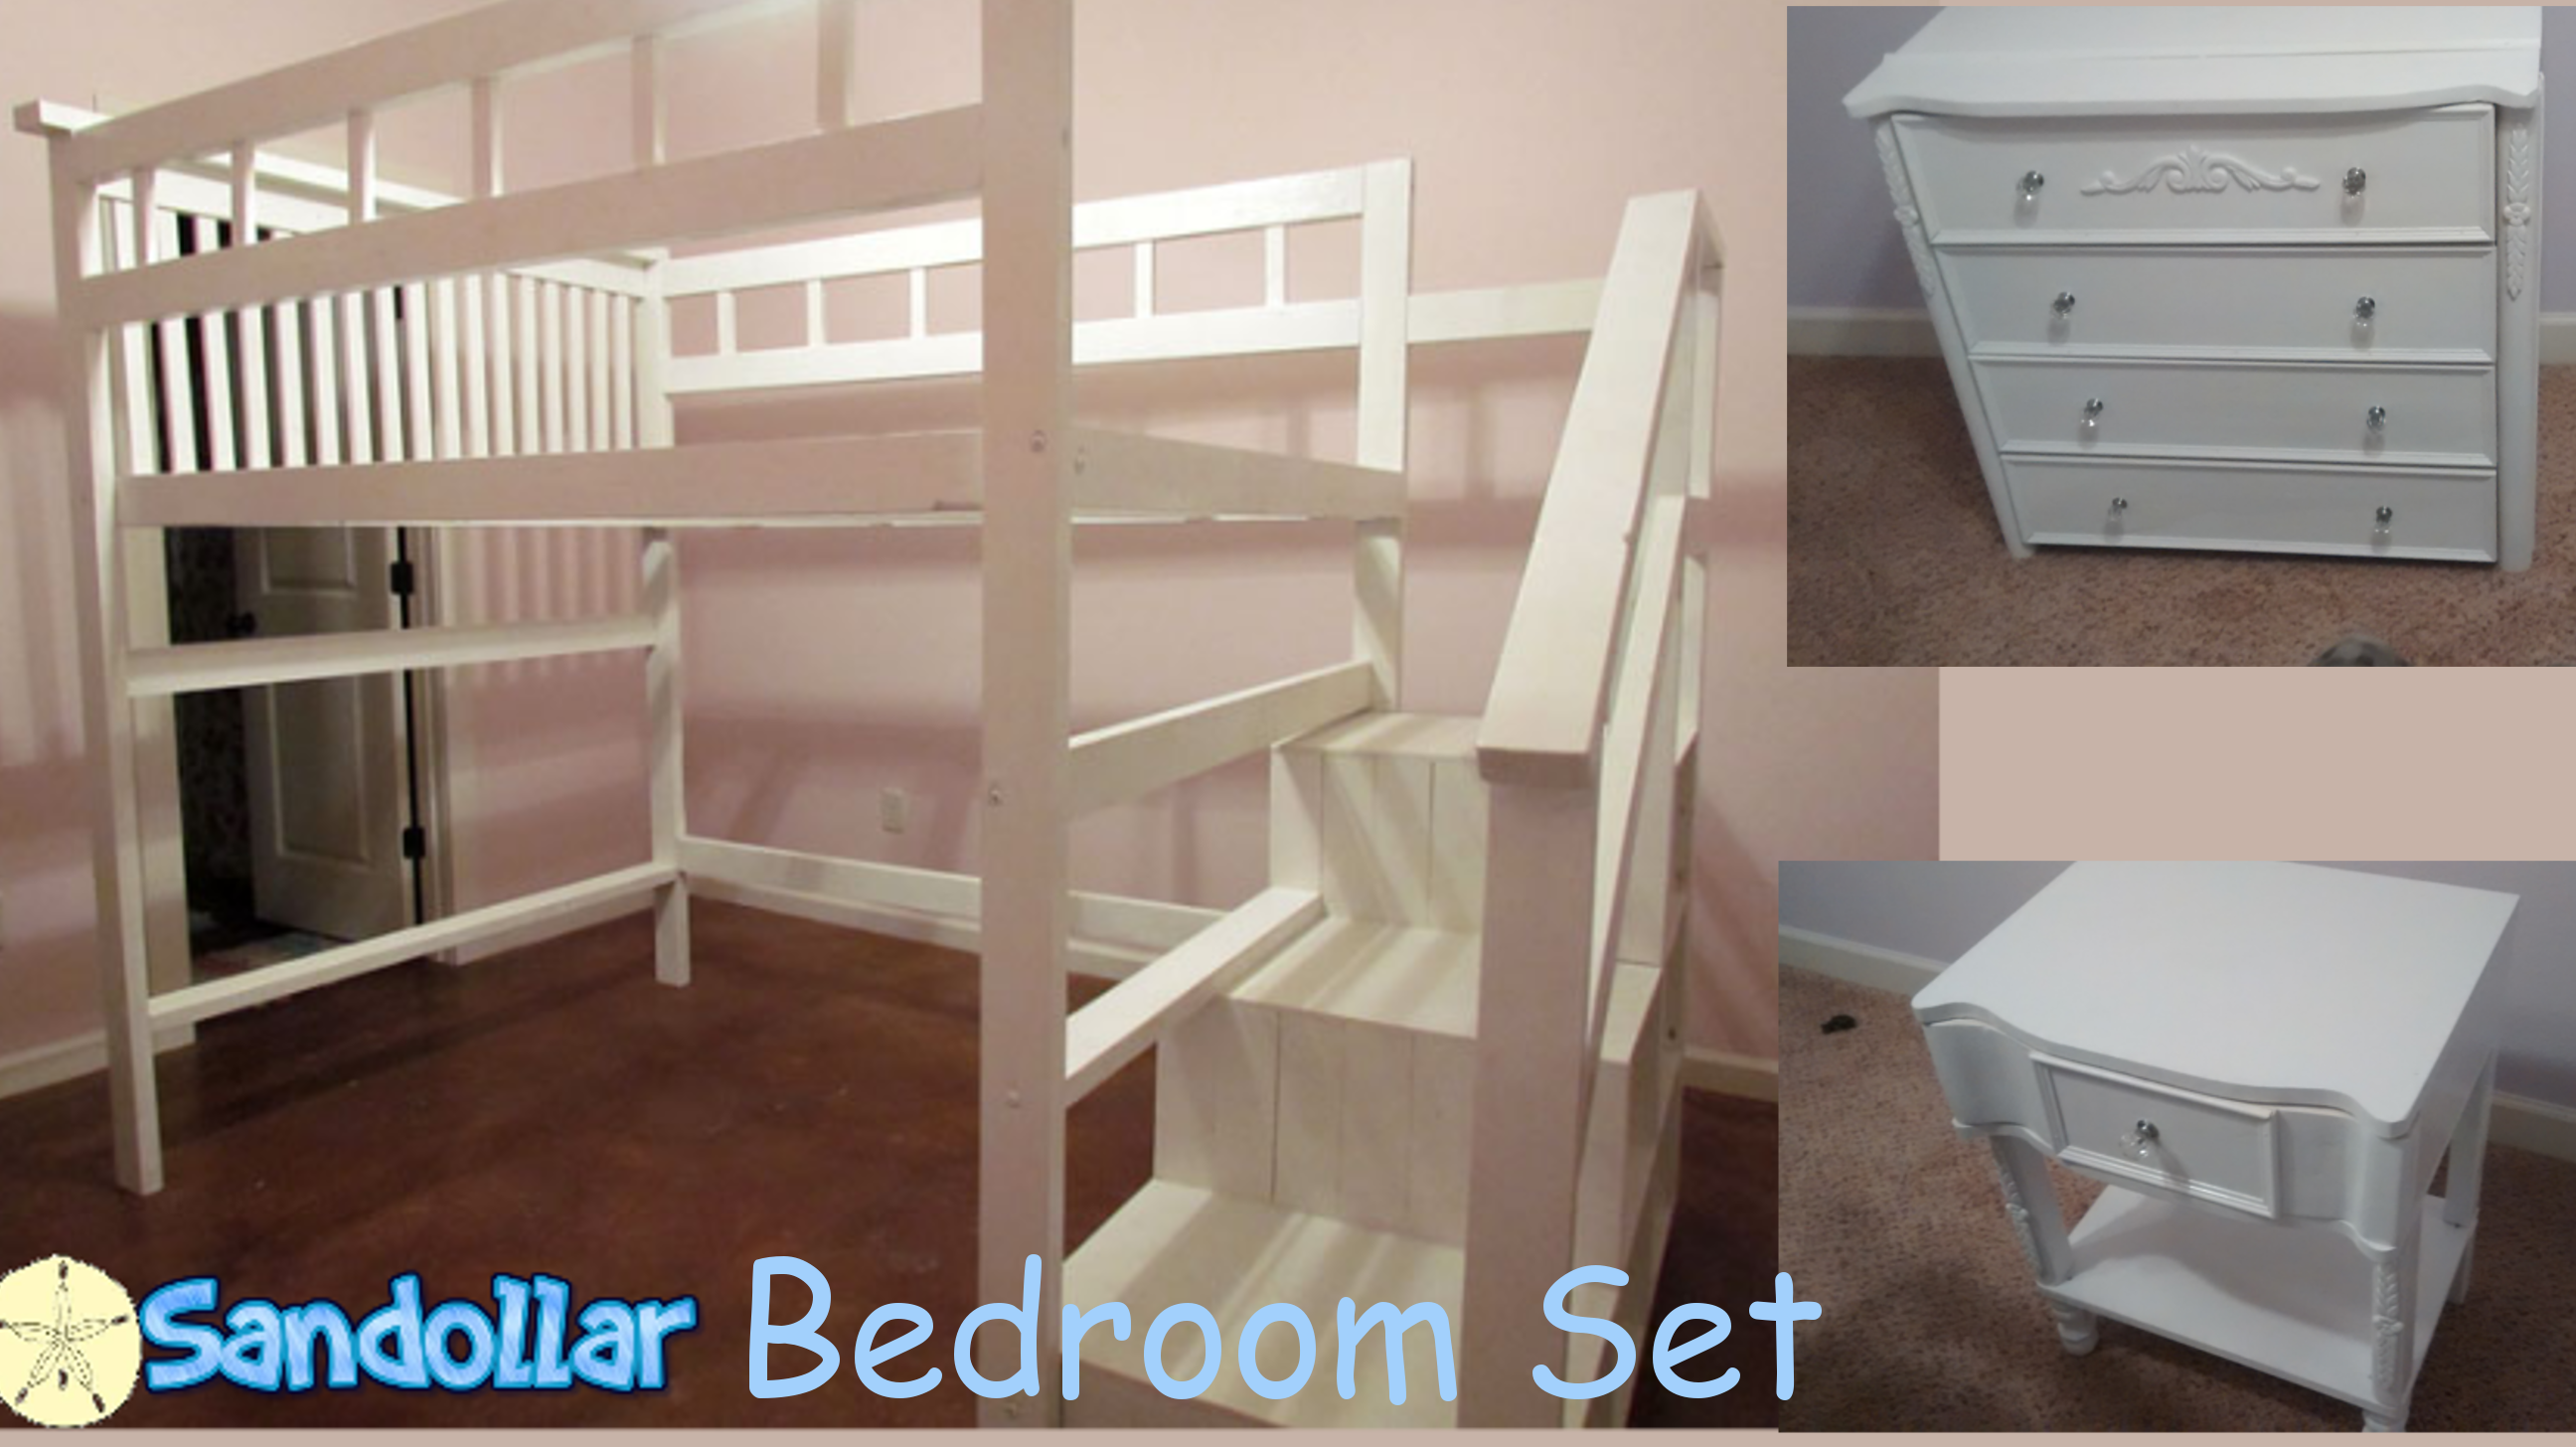 buy a hand crafted handmade white sandollar loft bed bedroom set made to order from skaggs wood. Black Bedroom Furniture Sets. Home Design Ideas